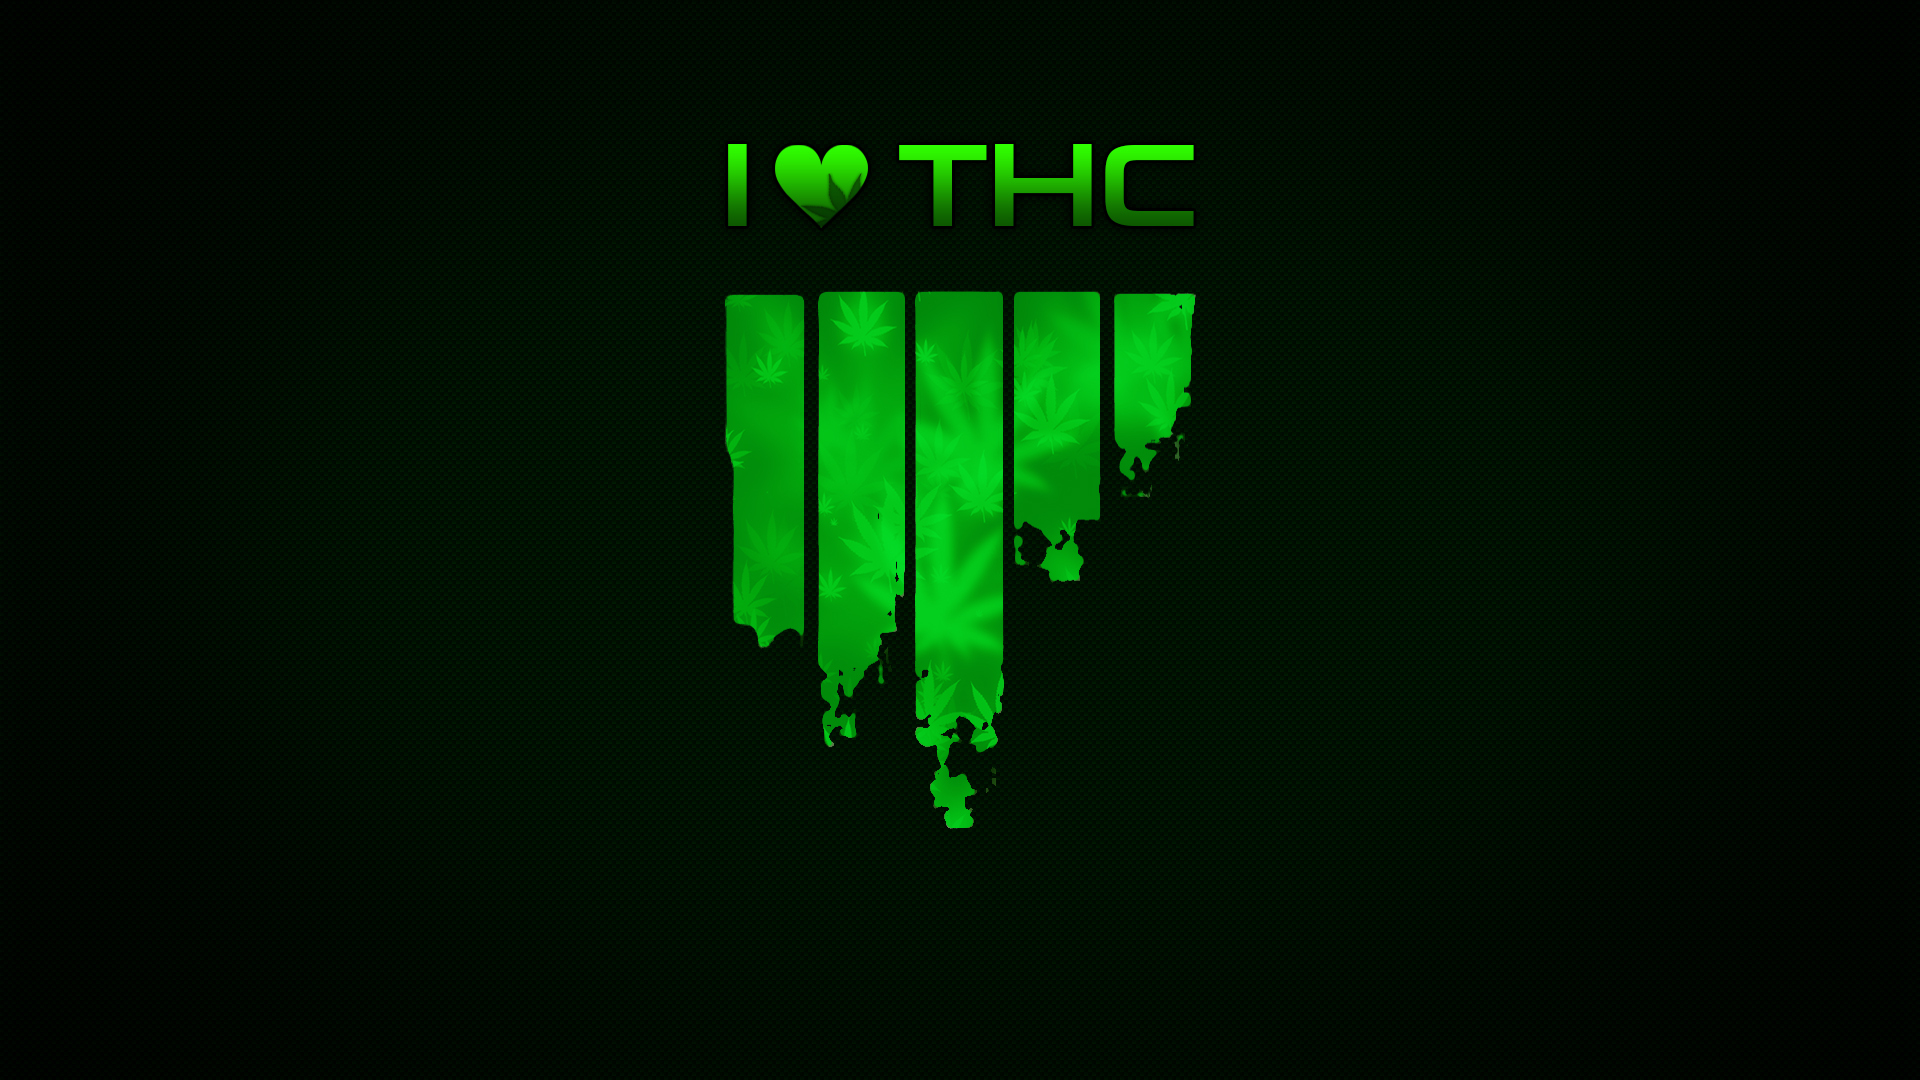 download thc wallpaper gallery